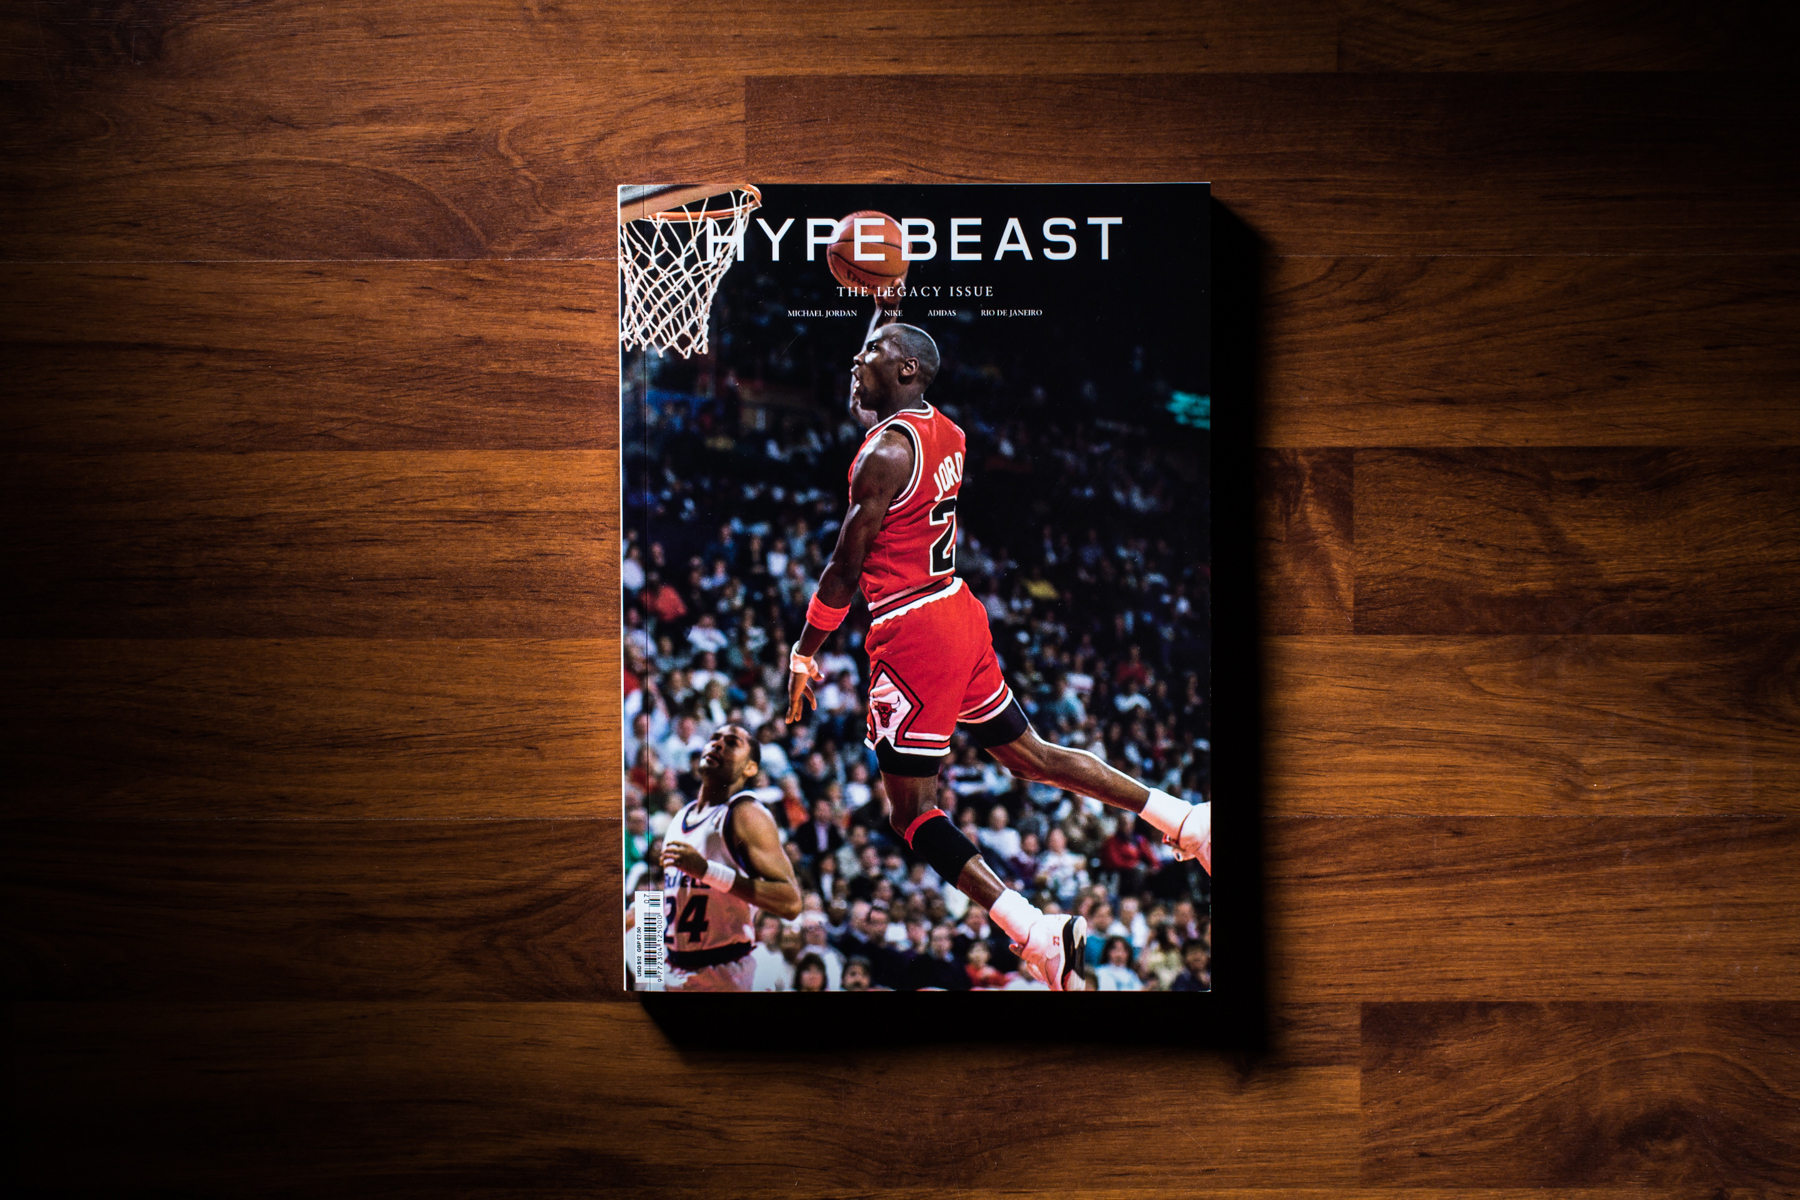 Hypebeast Shoes Wallpapers - Wallpaper Cave